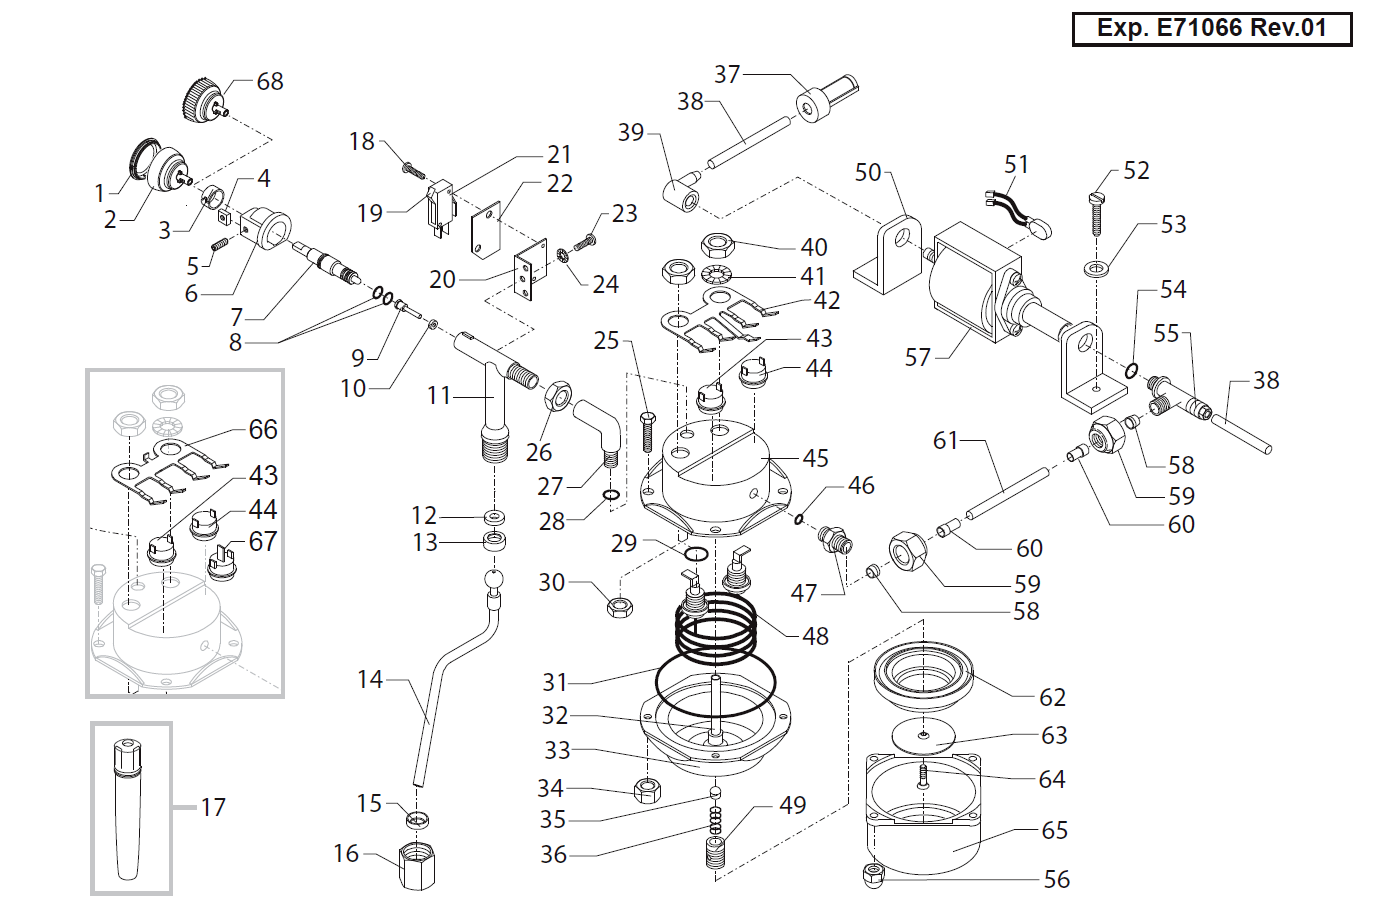 saeco starbucks via venezia schematic internal parts drawing 2 rh espressocare com saeco via veneto repair manual saeco syntia repair manual